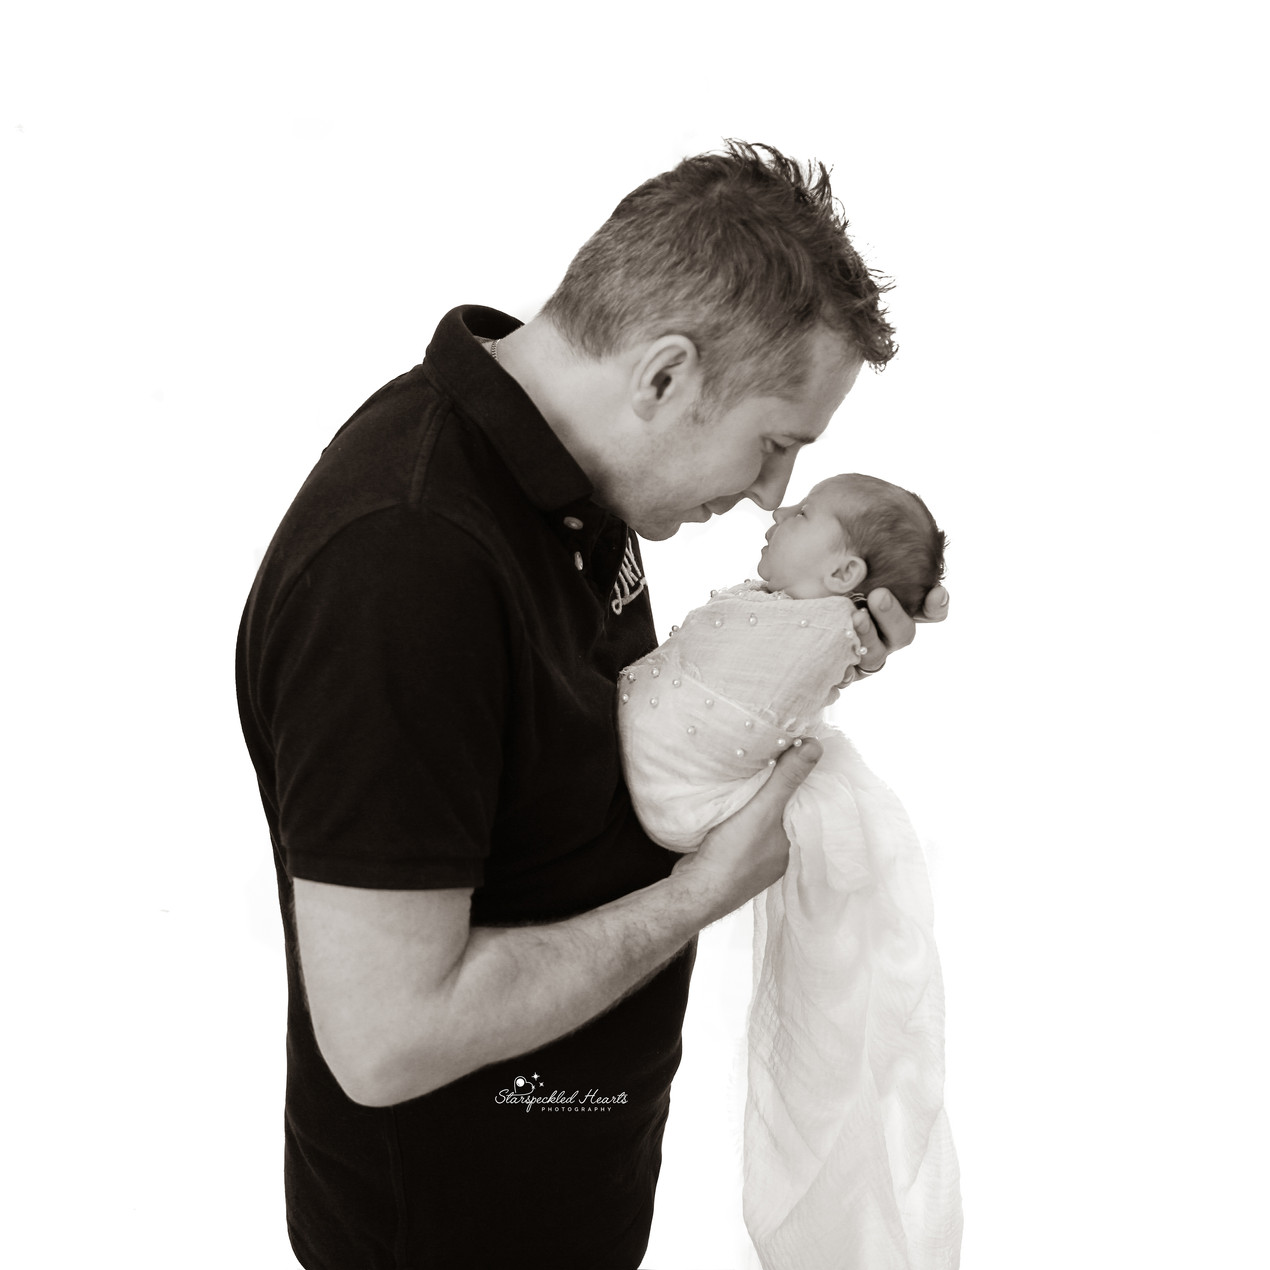 man holding a newborn baby girl up to his face